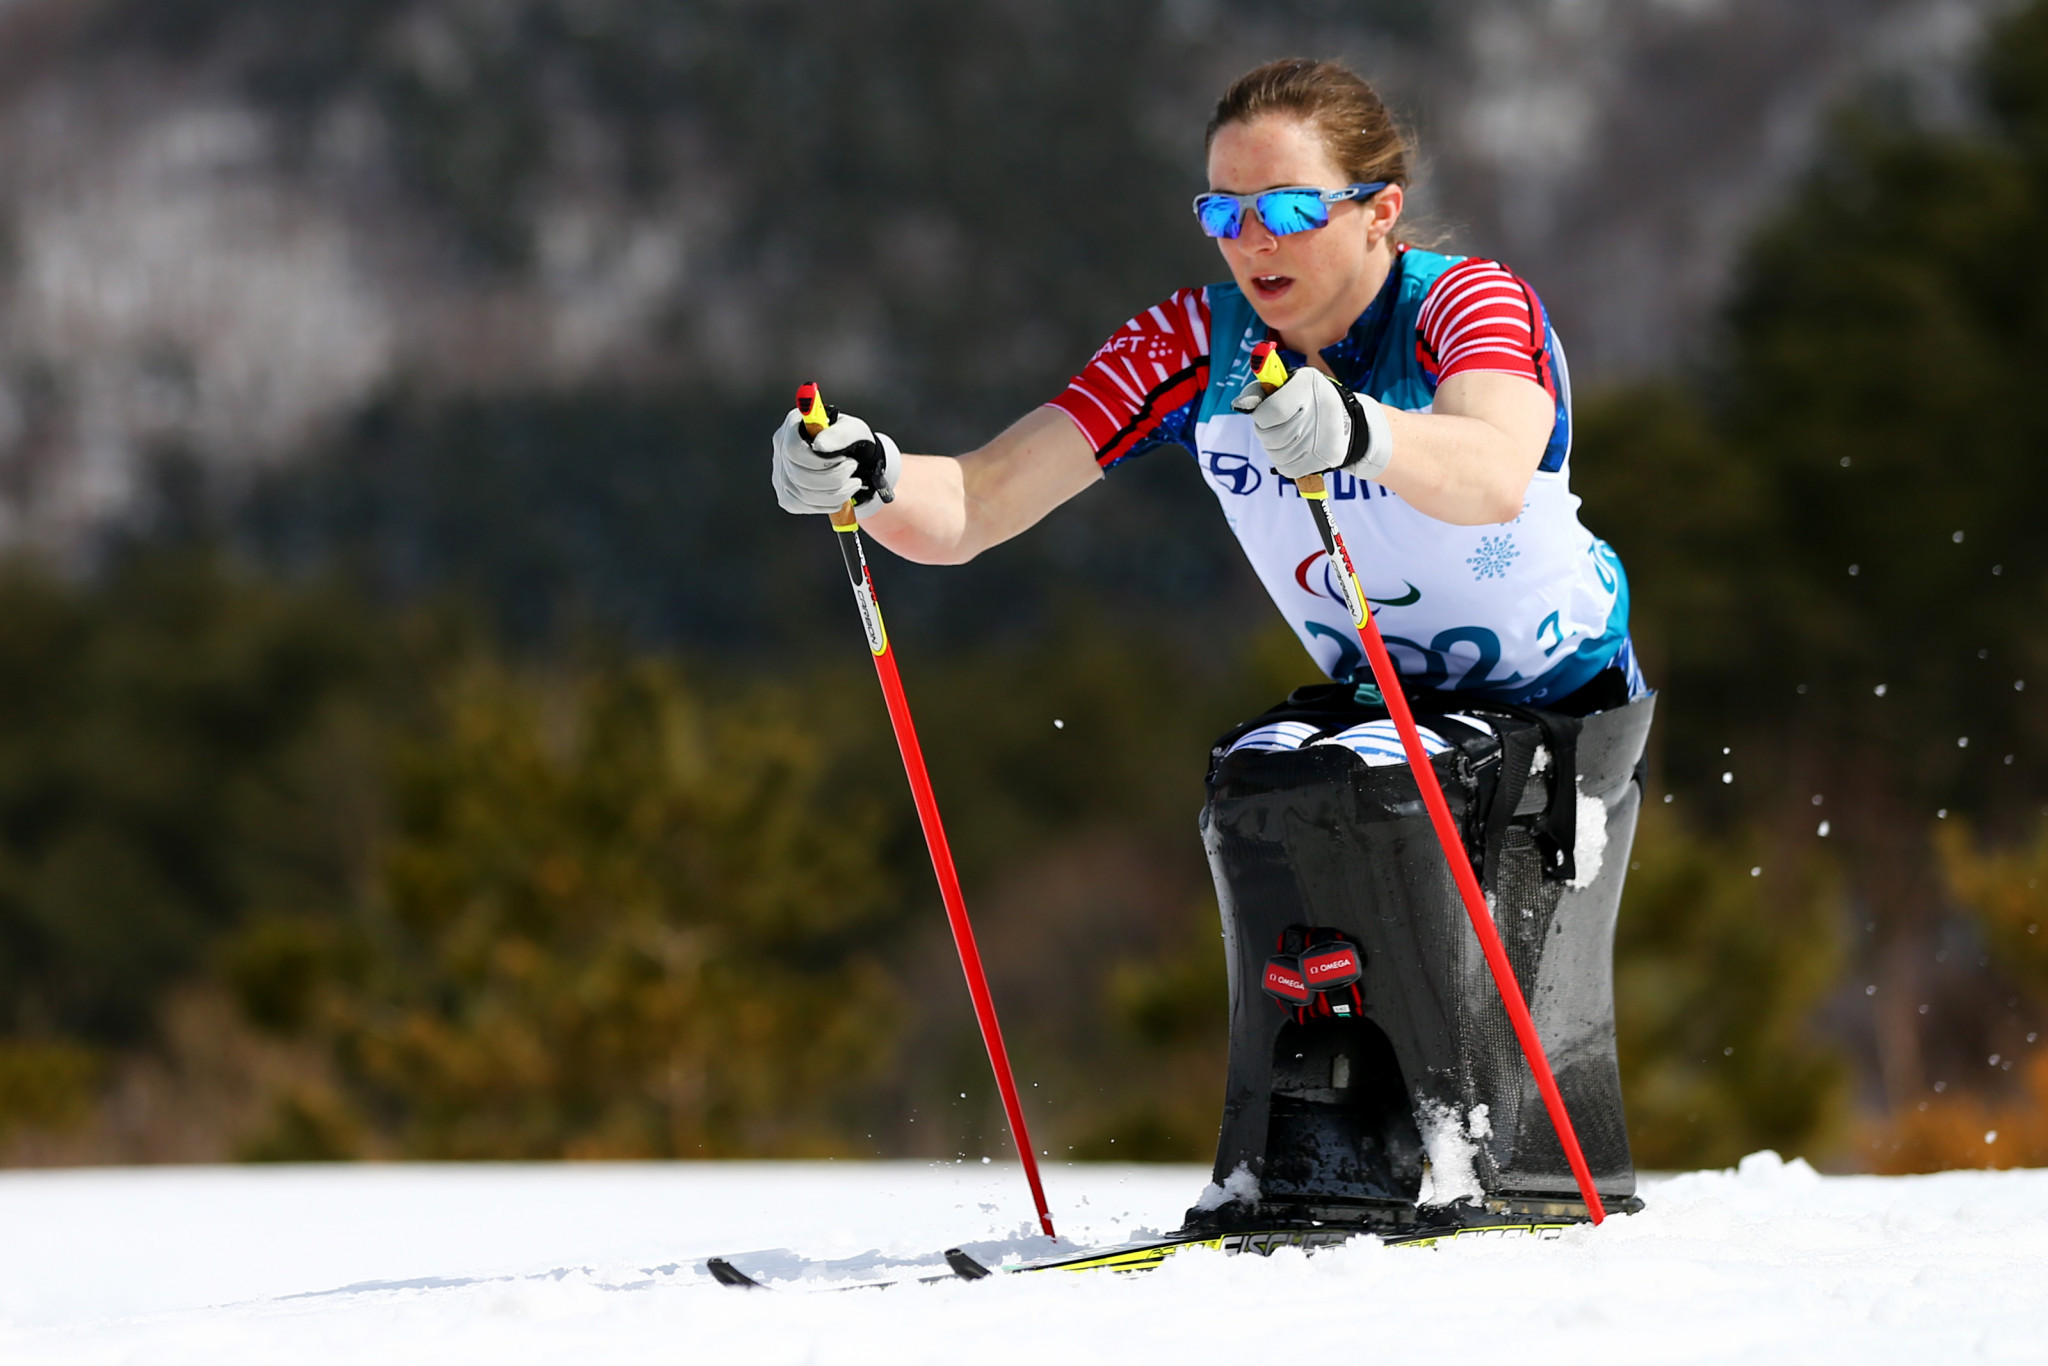 Para-Nordic skier Gretsch headlines APC Athlete of the Month nominations